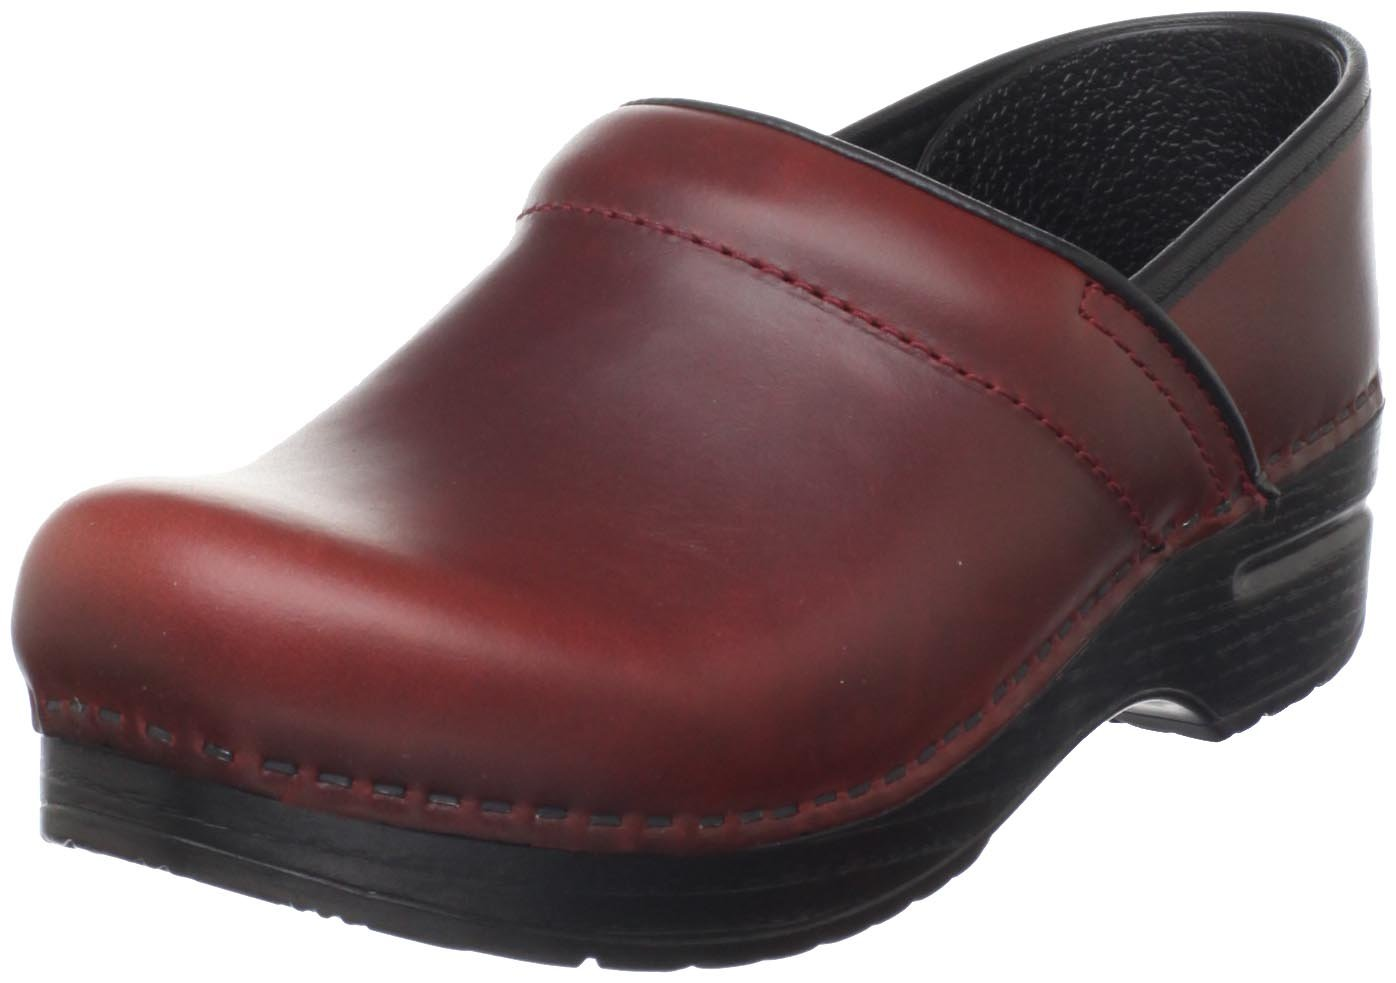 Dansko Professional Clog B072MS712B 5 B(M) US|Red